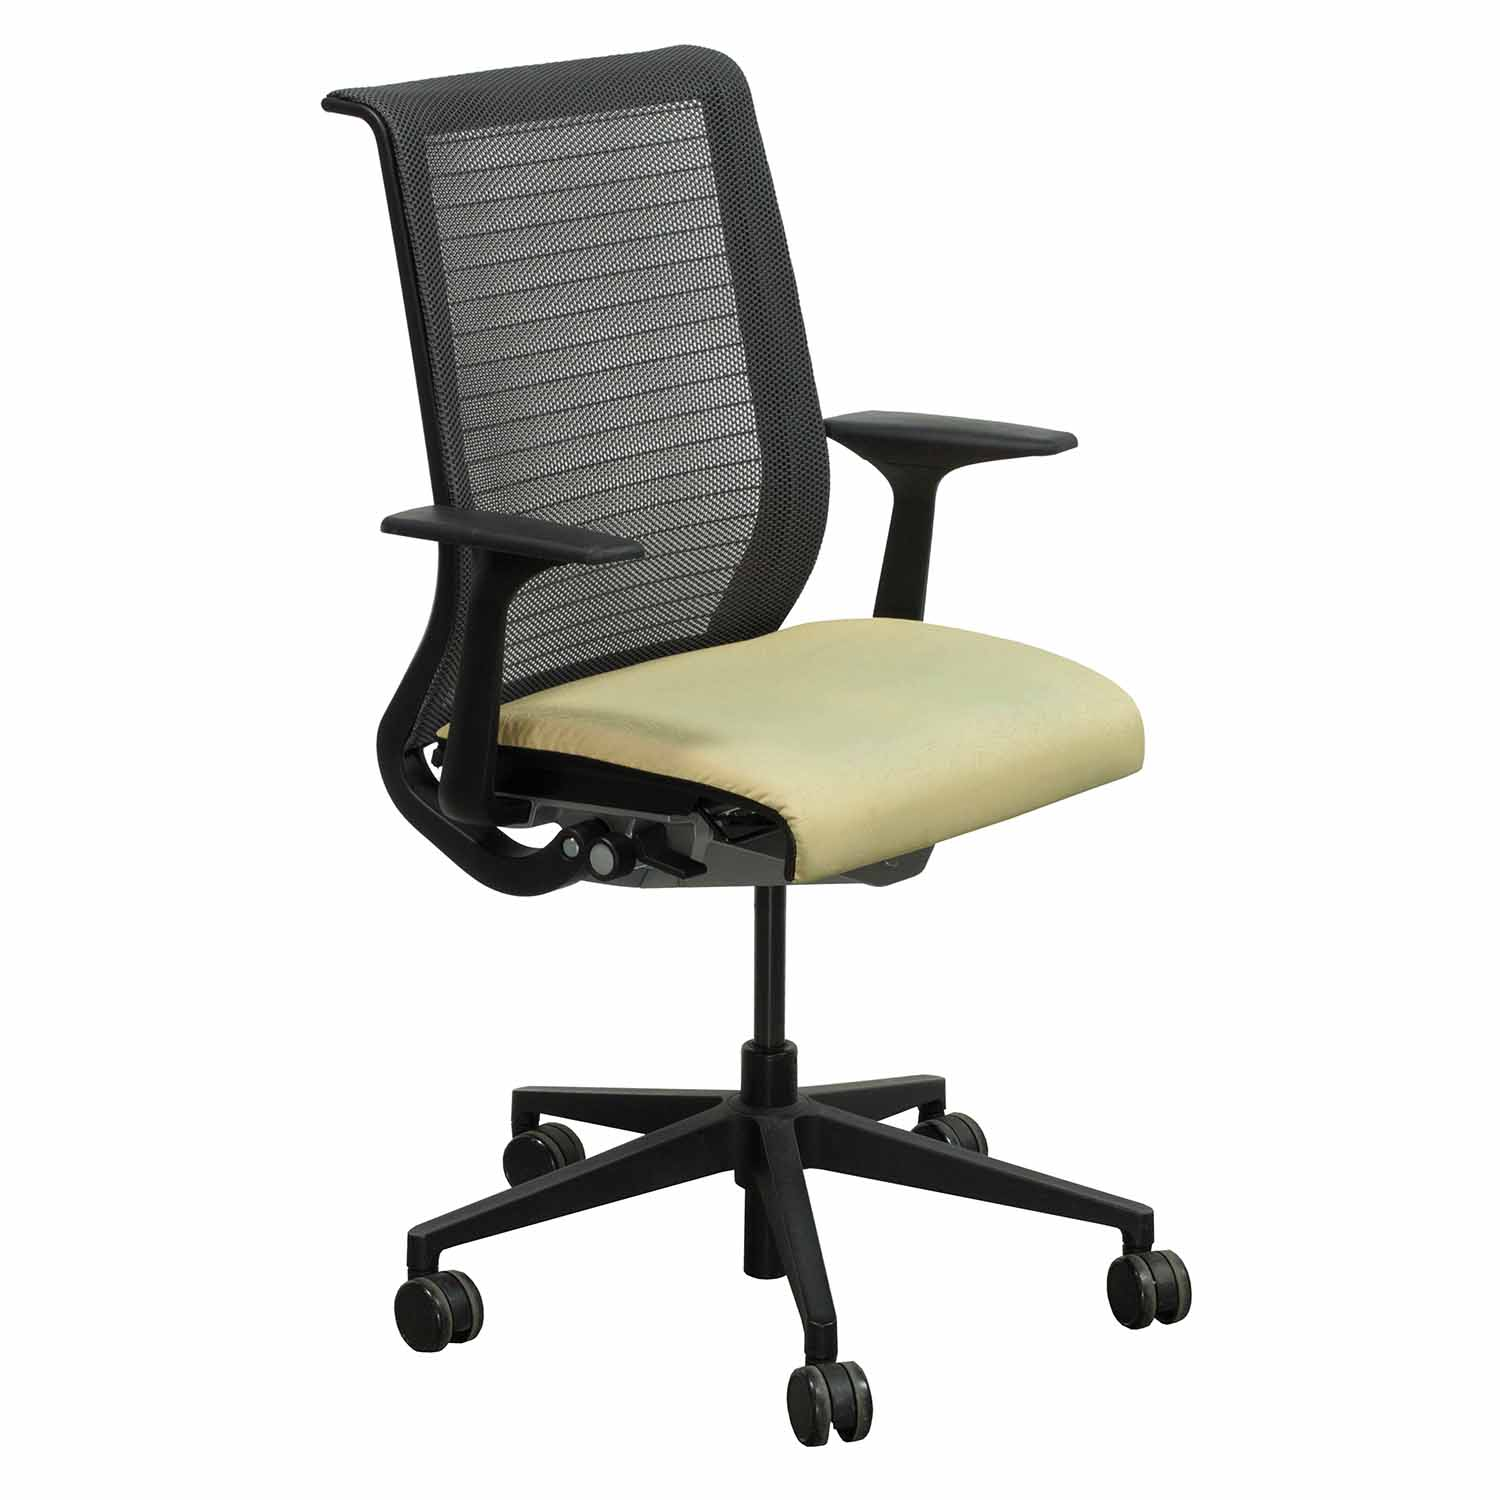 yellow office chair wheelchair jingle bell rock steelcase think used mesh back conference